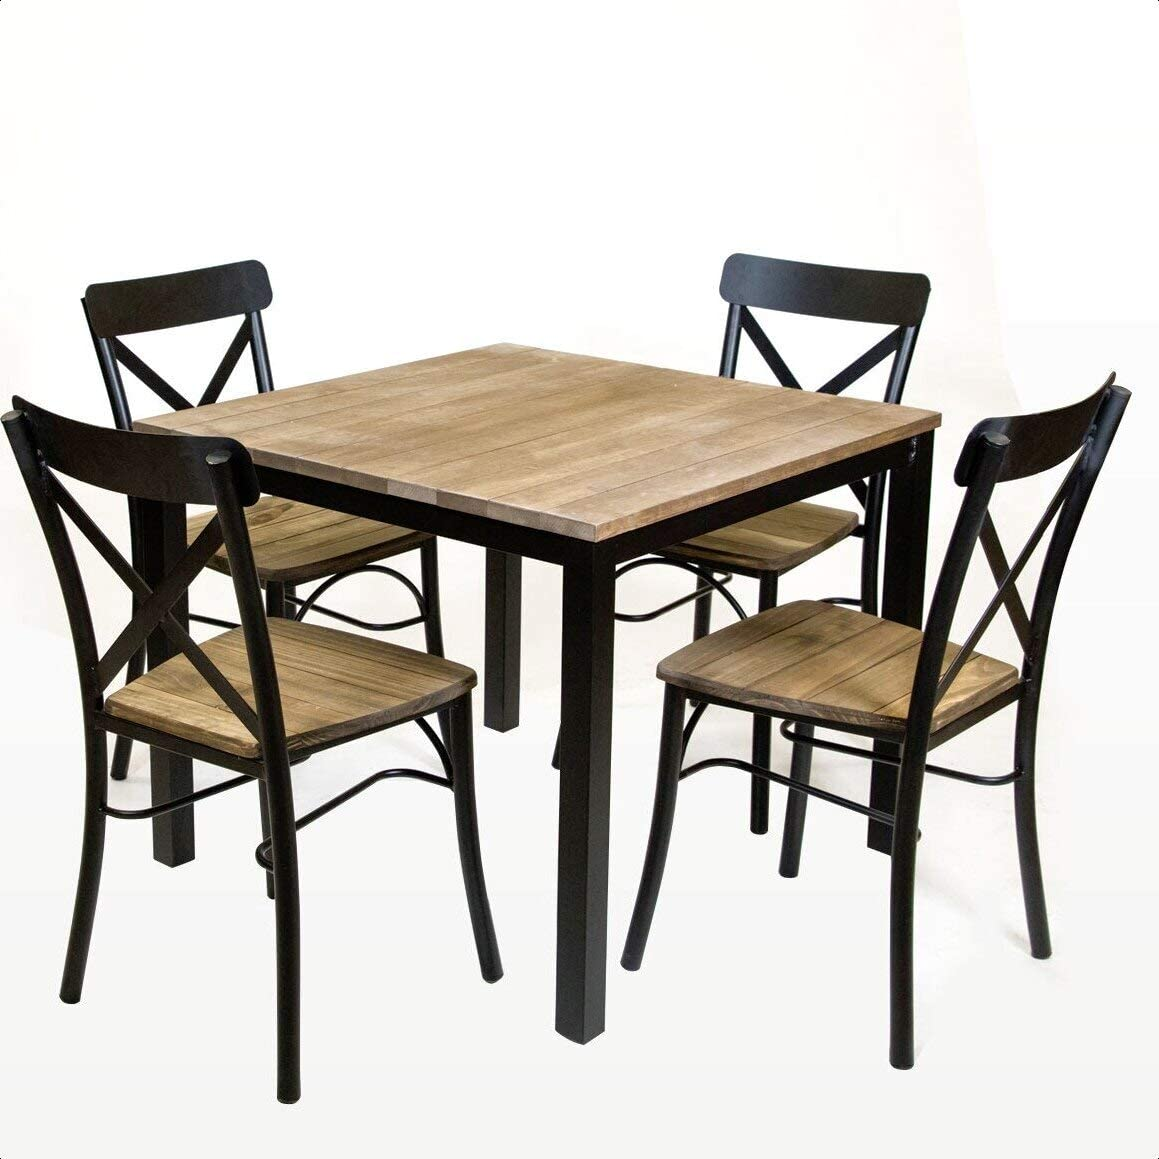 Standard Square Vintage Solid Wood Max 87% OFF famous Top Table Dining Table: Yes